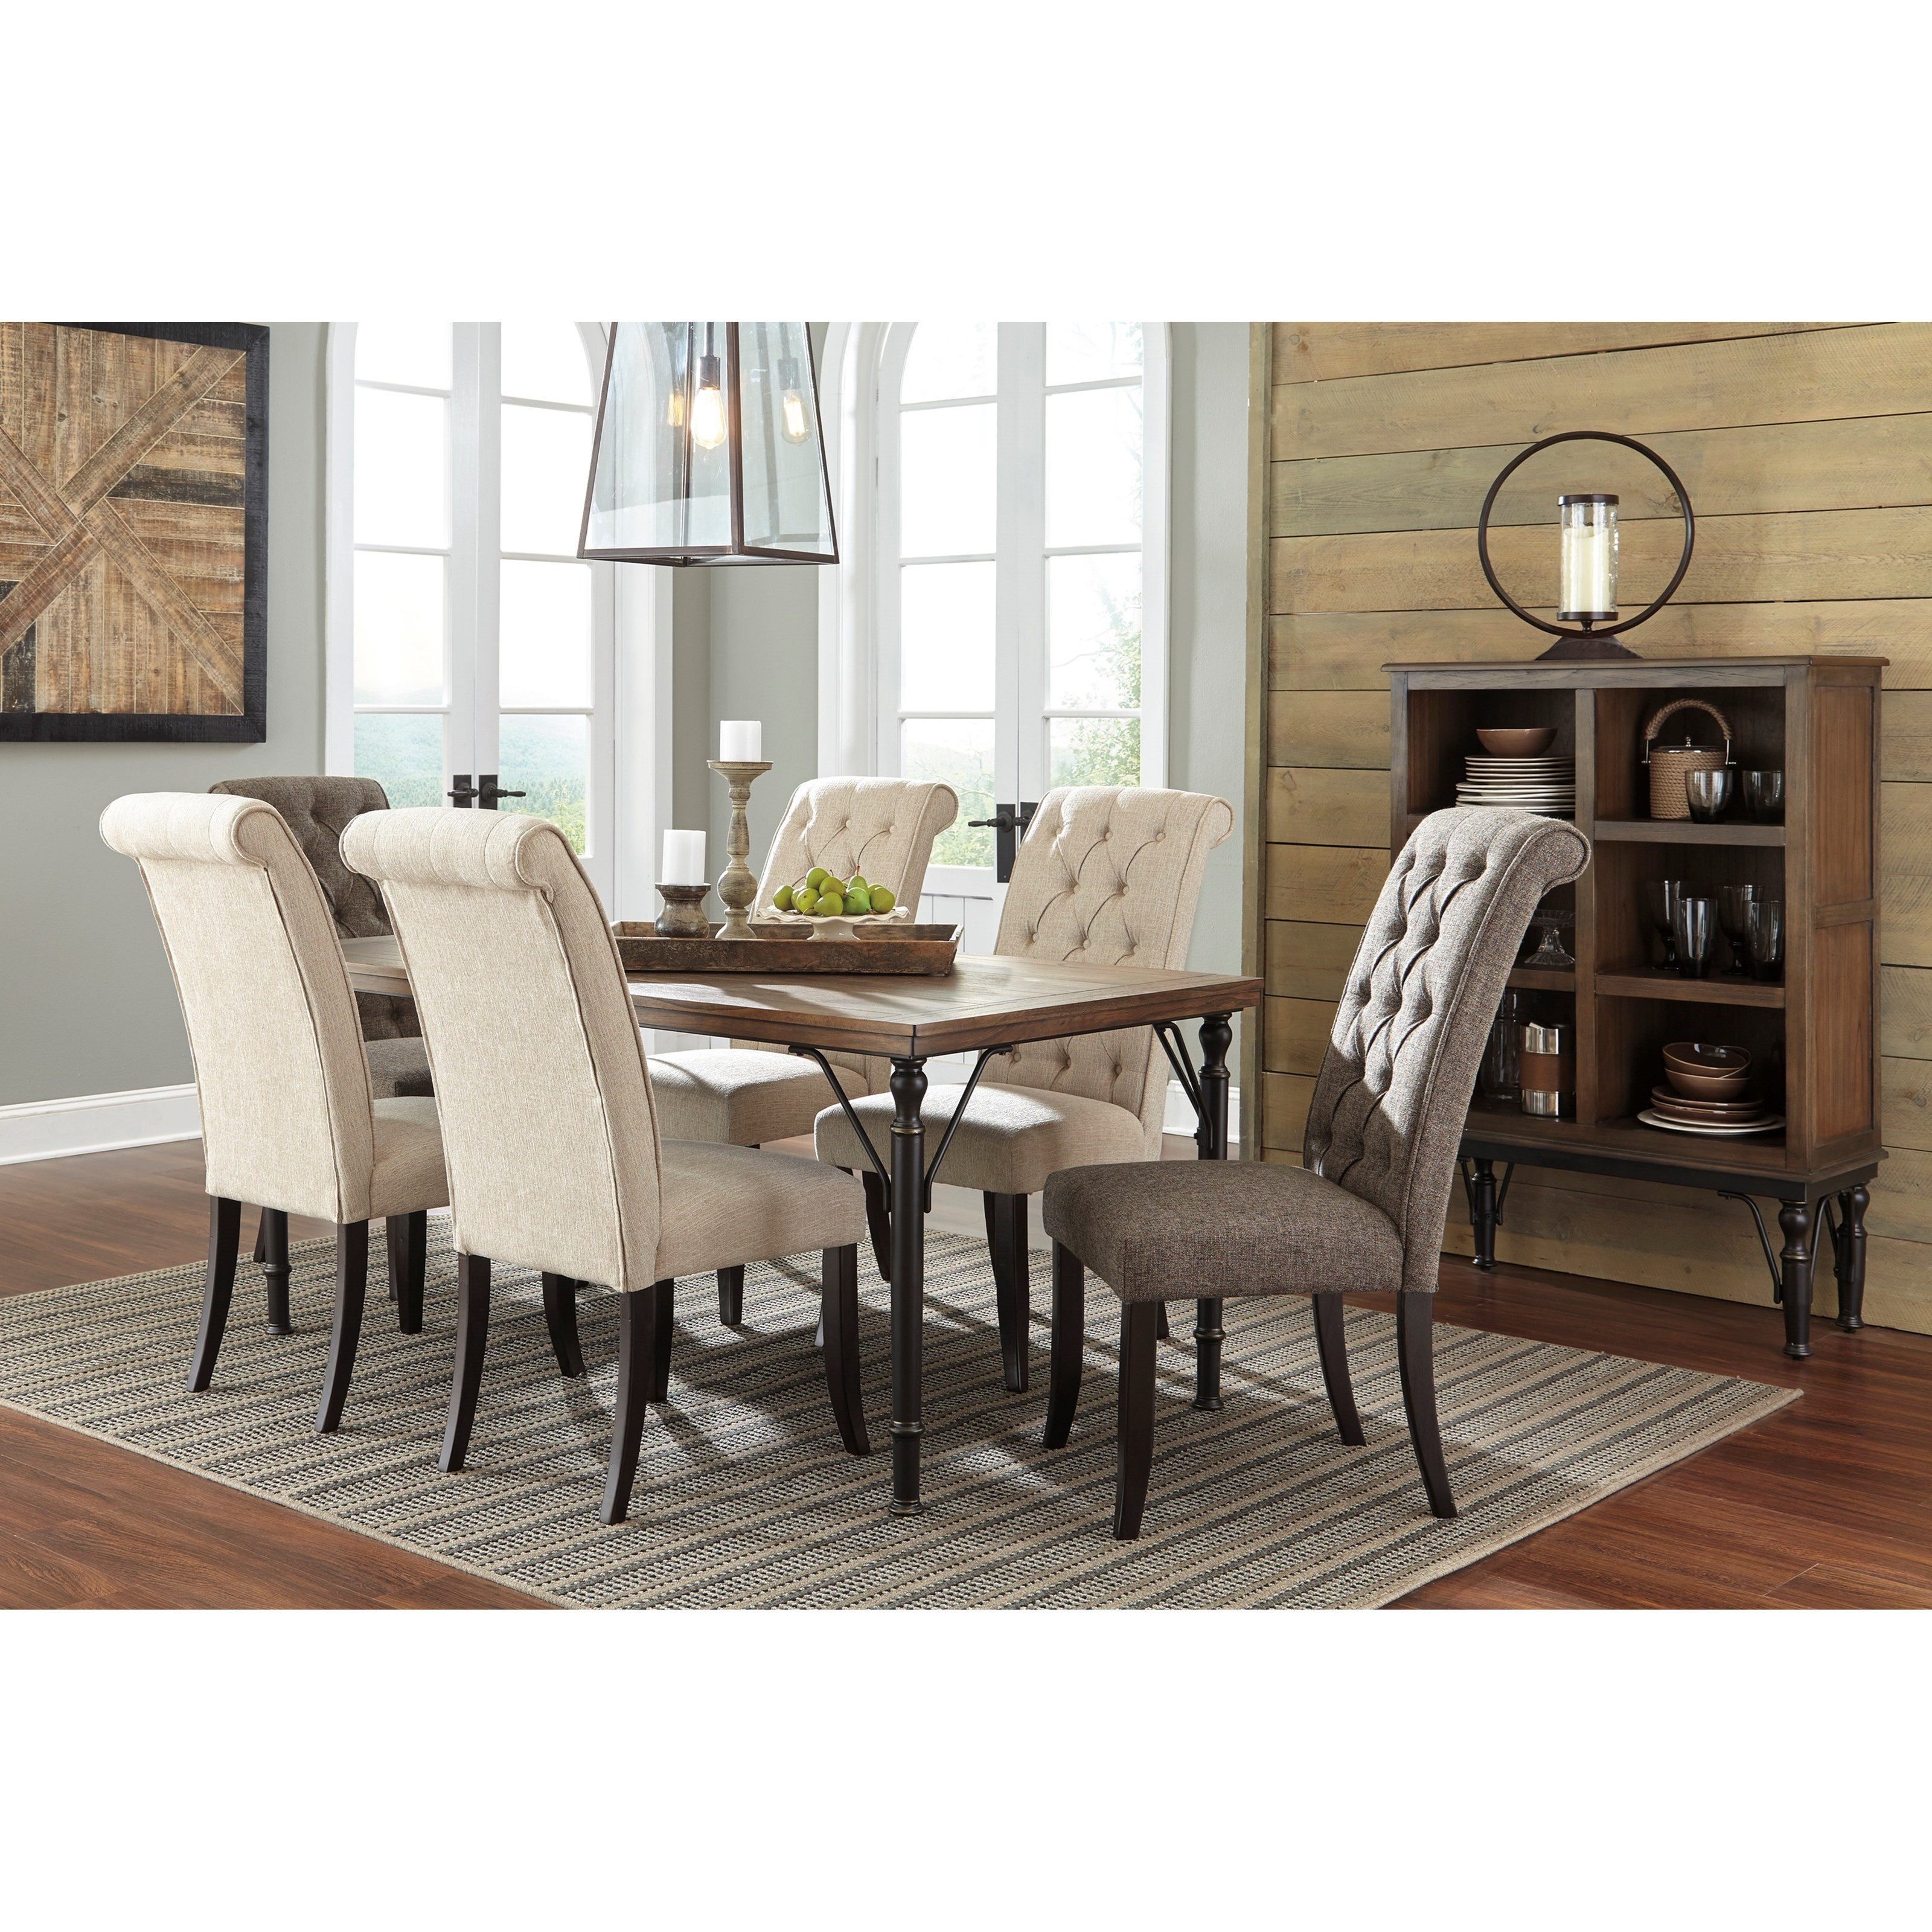 Ashley Dining Room Chairs Signature Design By Ashley Tripton D530 02 Dining